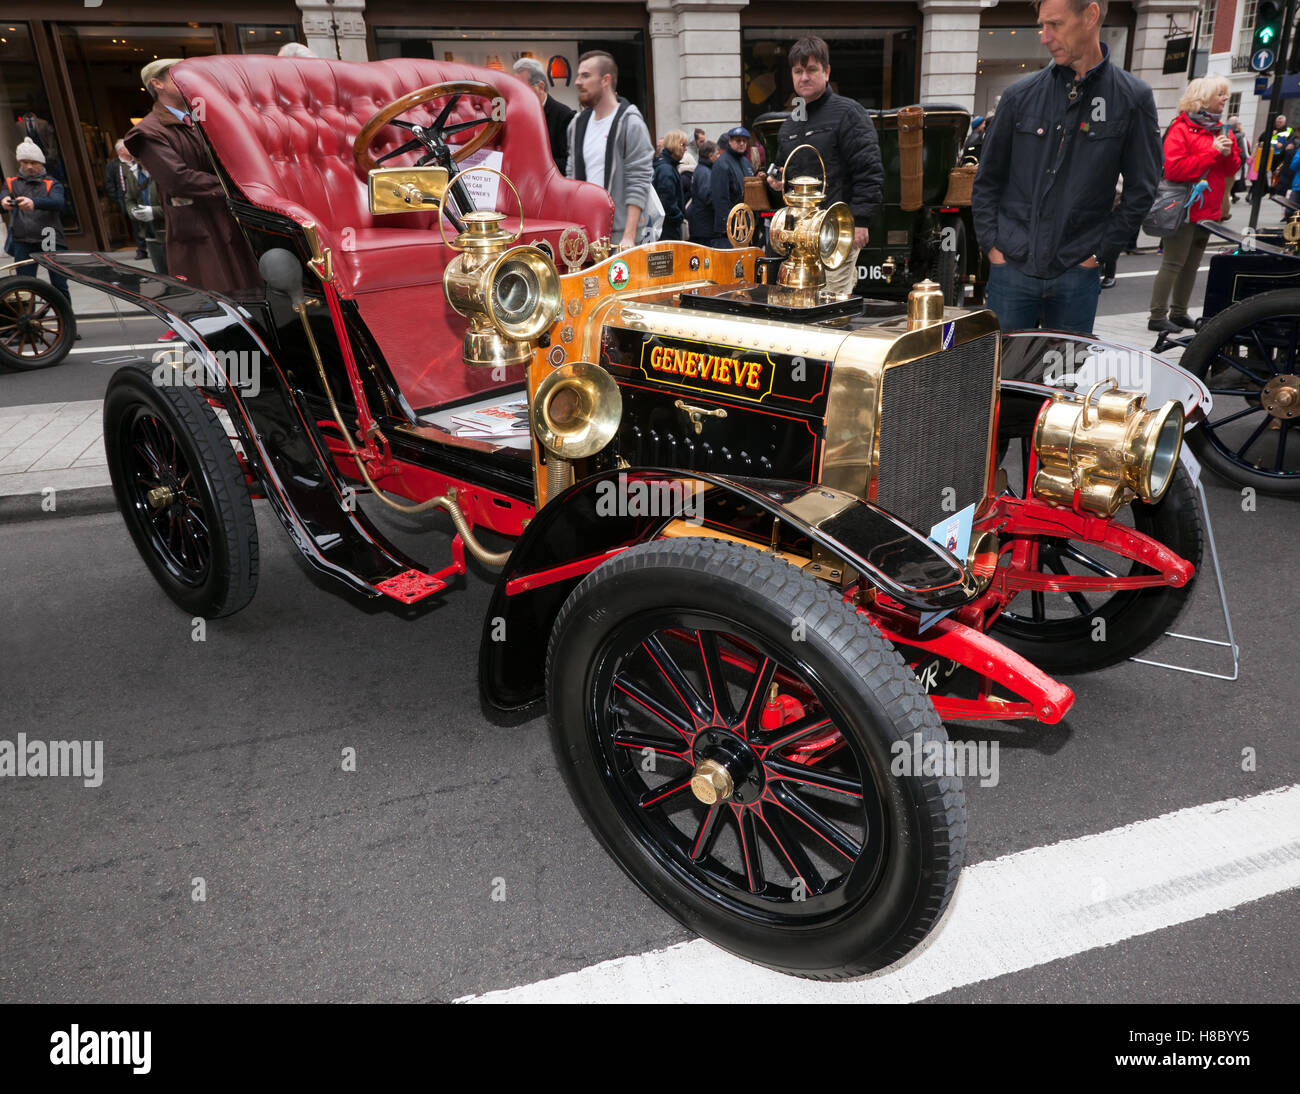 image-of-genevieve-a-1904-darracq-famous-for-staring-in-the-british-H8BYY5.jpg